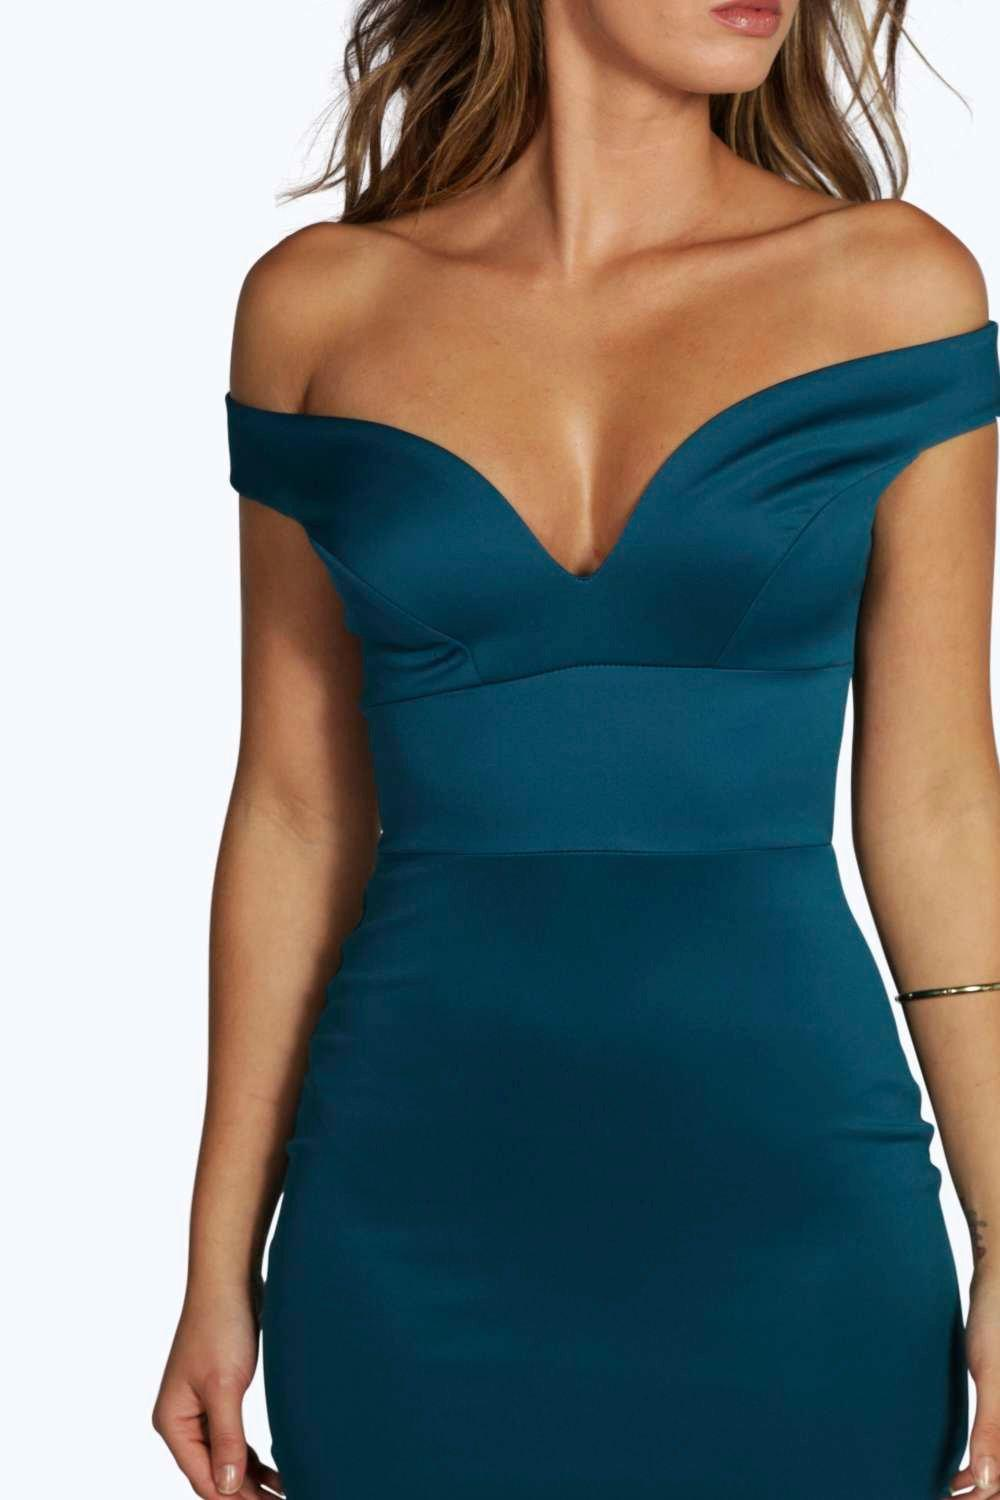 eed43ede83d93 Boohoo-Womens-Petite-Nisha-Off-The-Shoulder-Dress thumbnail